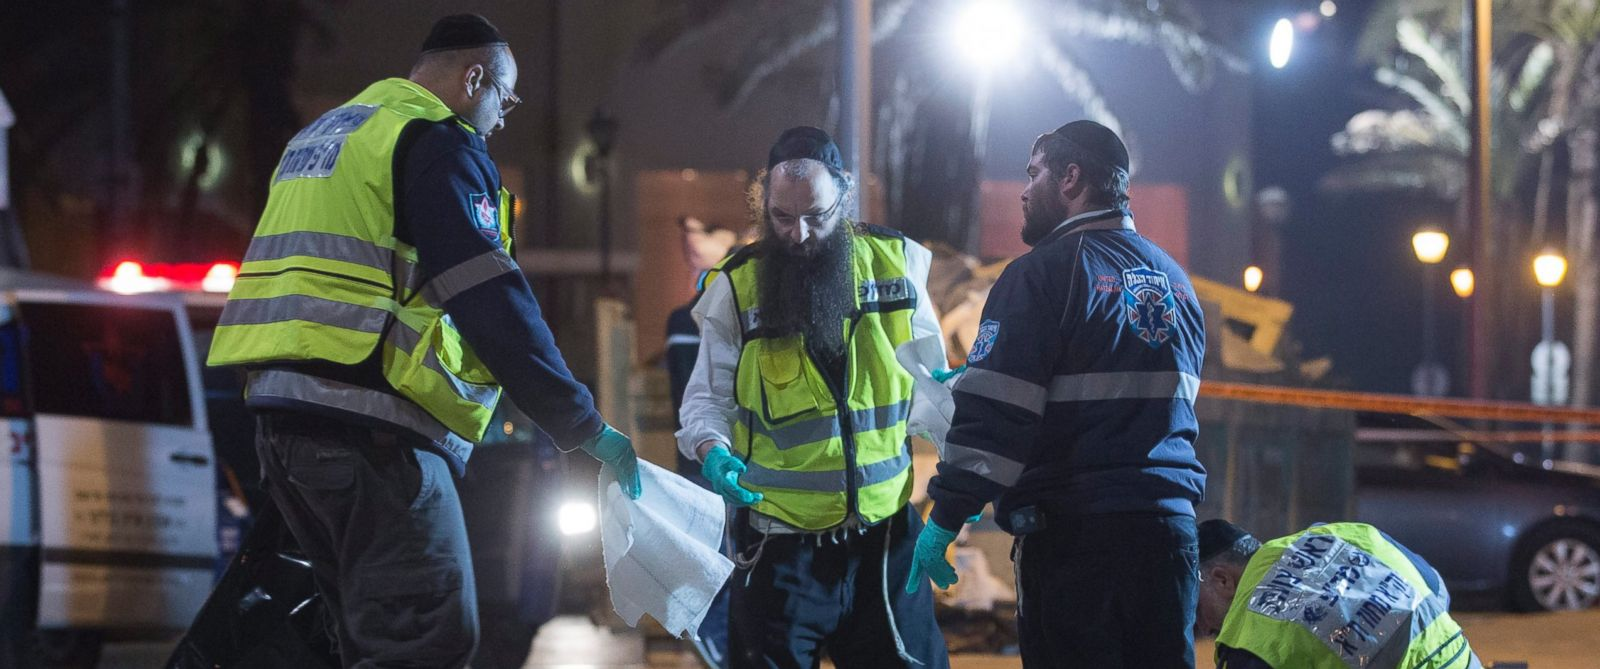 PHOTO: An ultra-Orthodox Jewish burial society cleaning up blood and medical bandages at the scene of a stabbing attack in old Jaffa, just south of Tel Aviv, Israel, March 8, 2016.